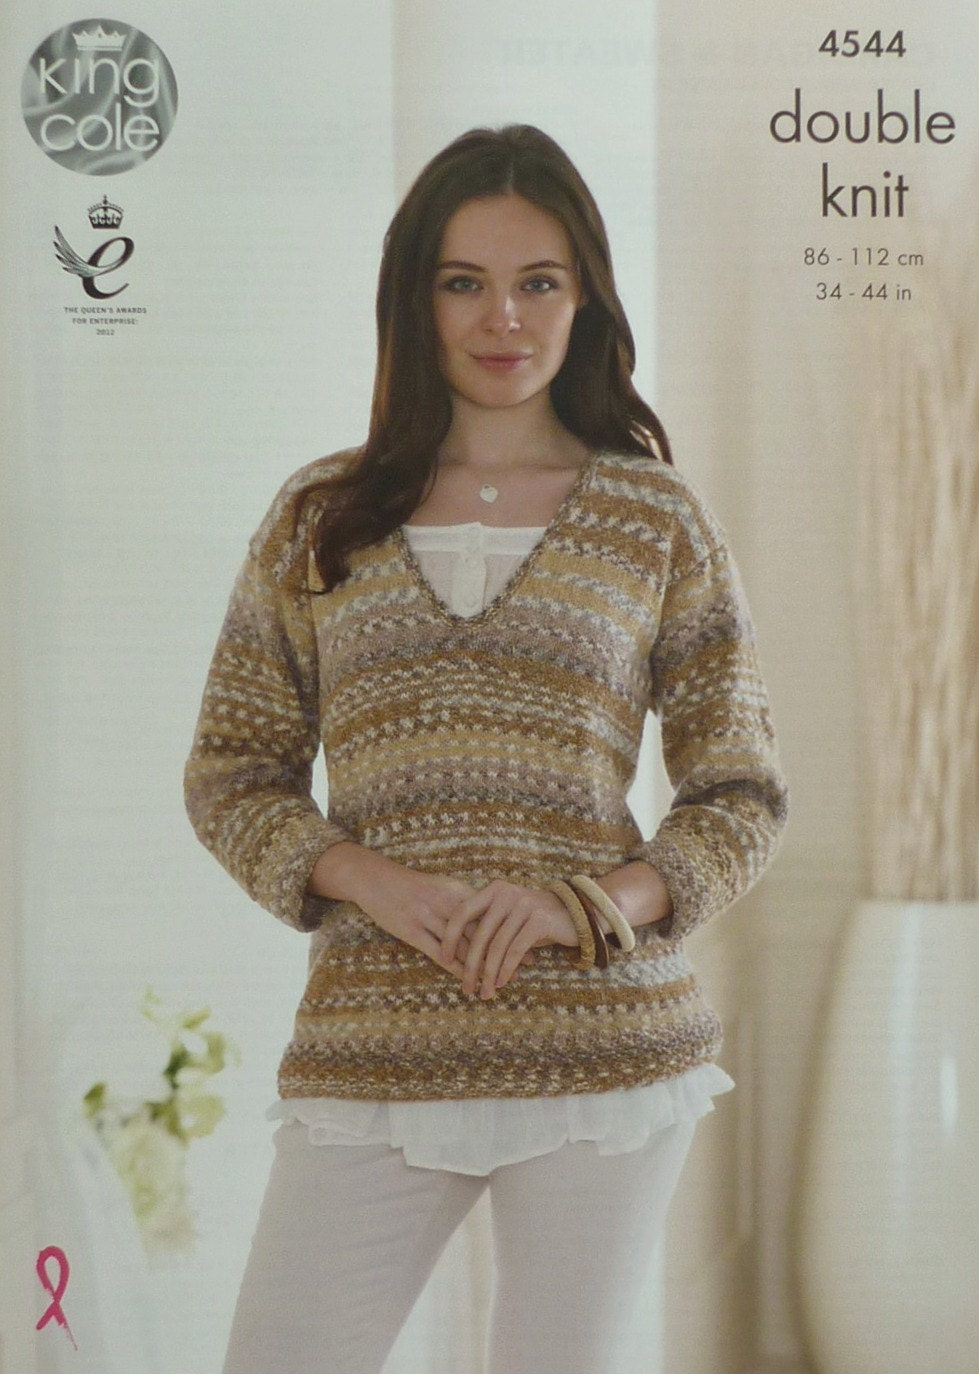 Knitting Pattern Ladies V Neck Jumper : Womens Knitting Pattern K4544 Ladies 3/4 Sleeve V-Neck Jumper Knitting Patter...